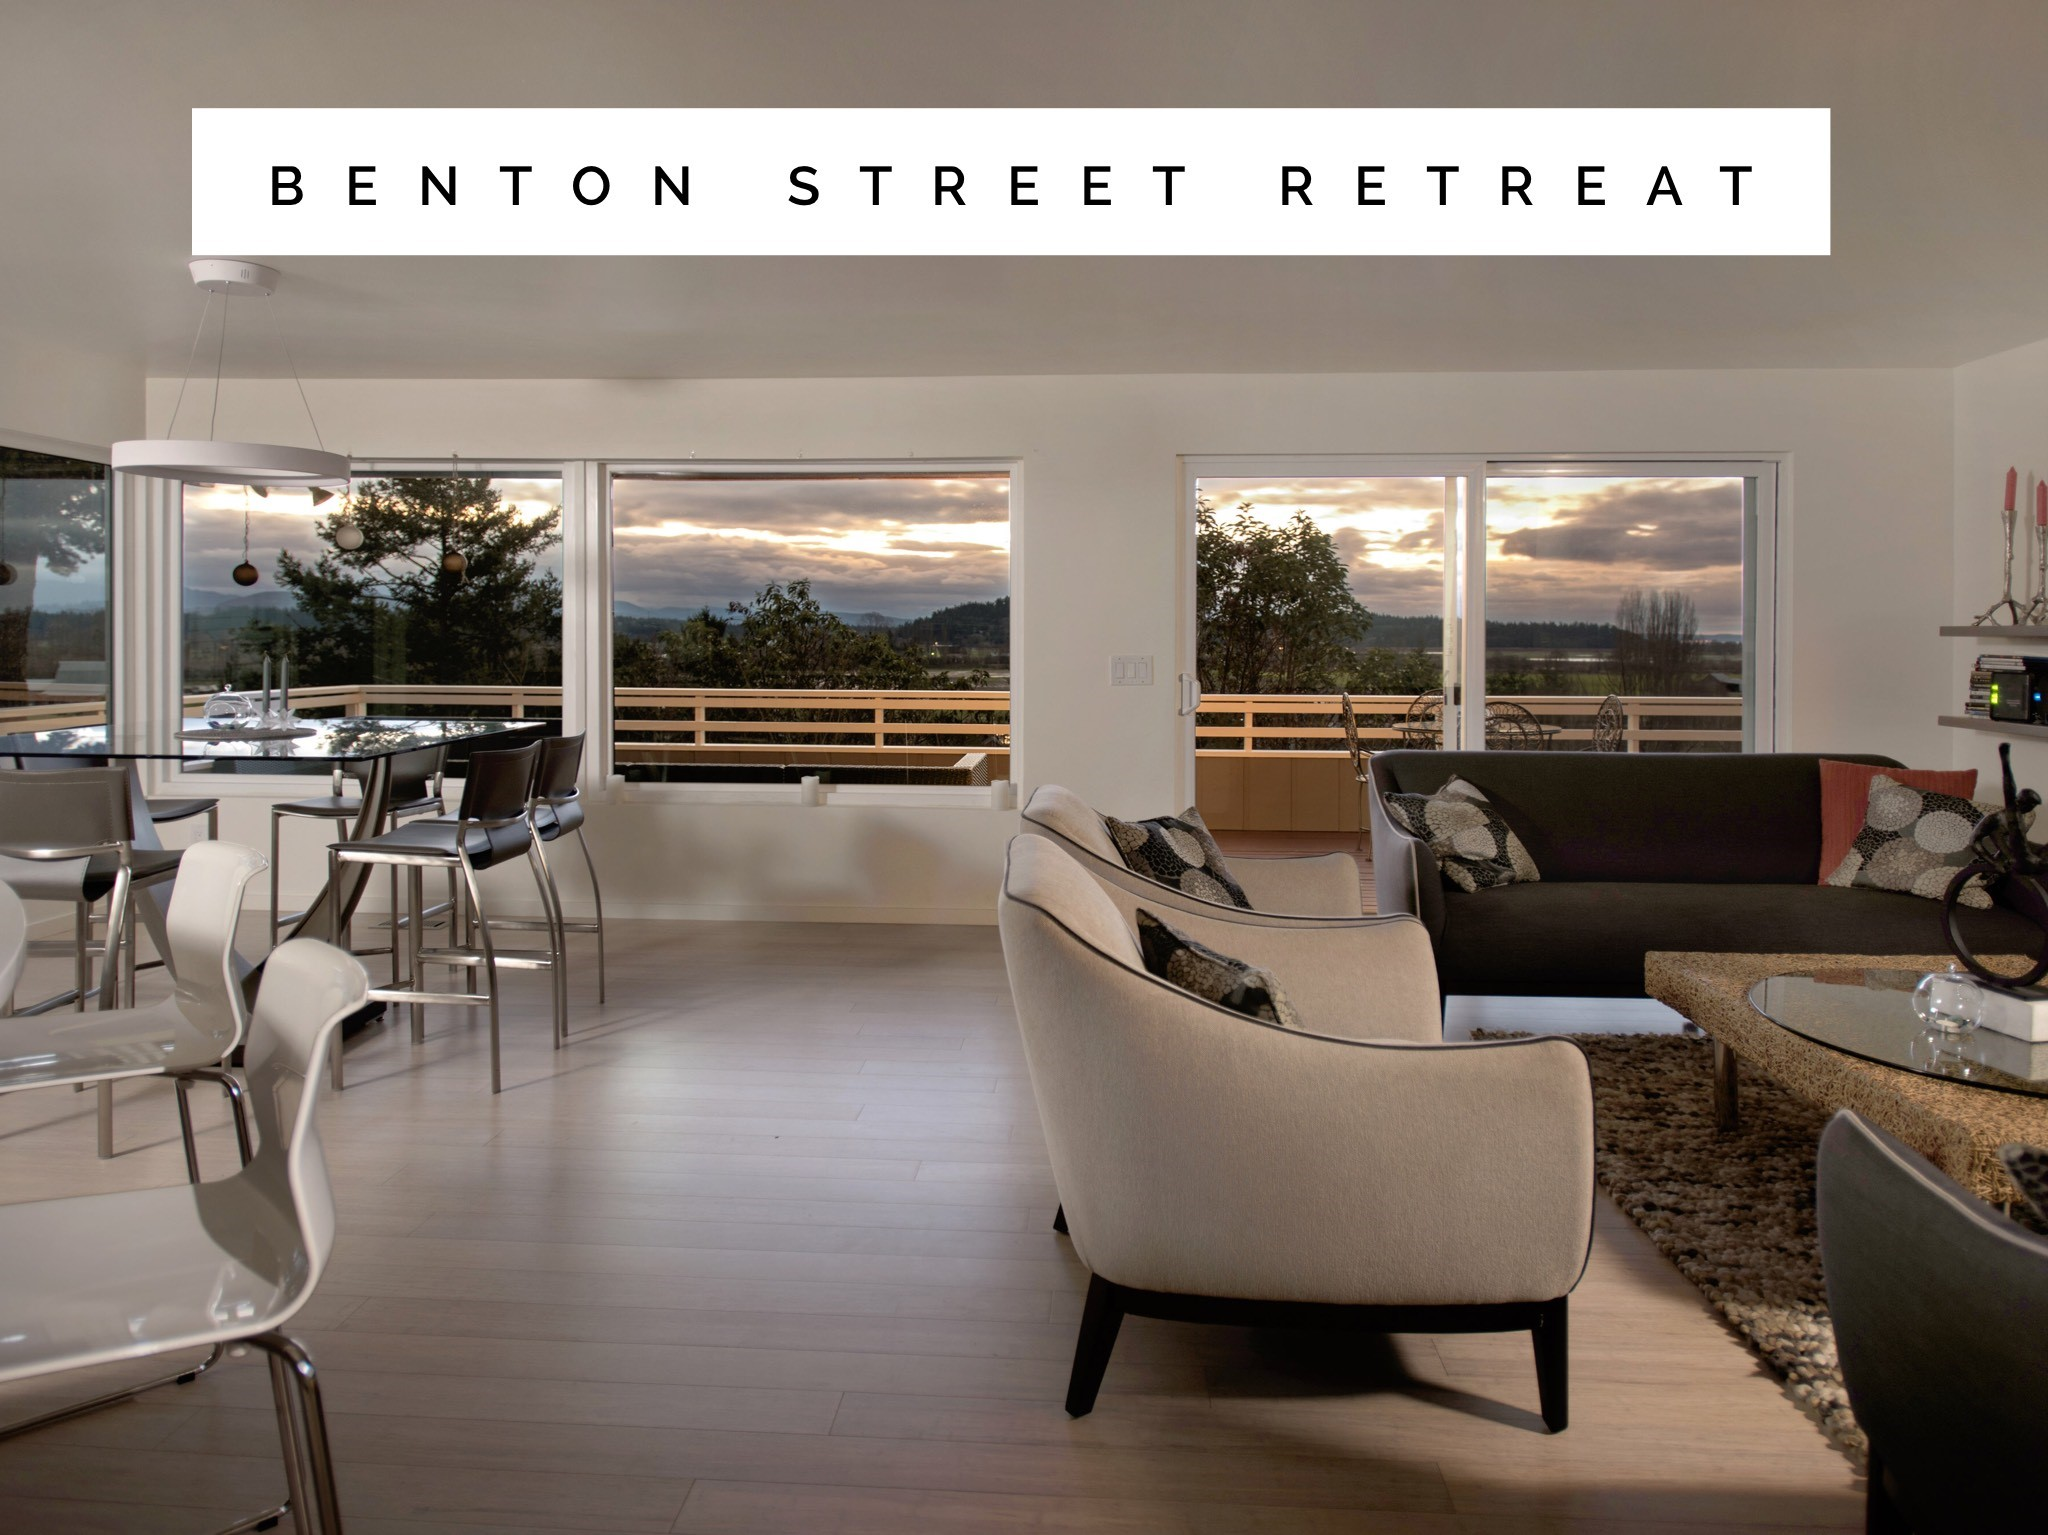 Benton Street Retreat Website